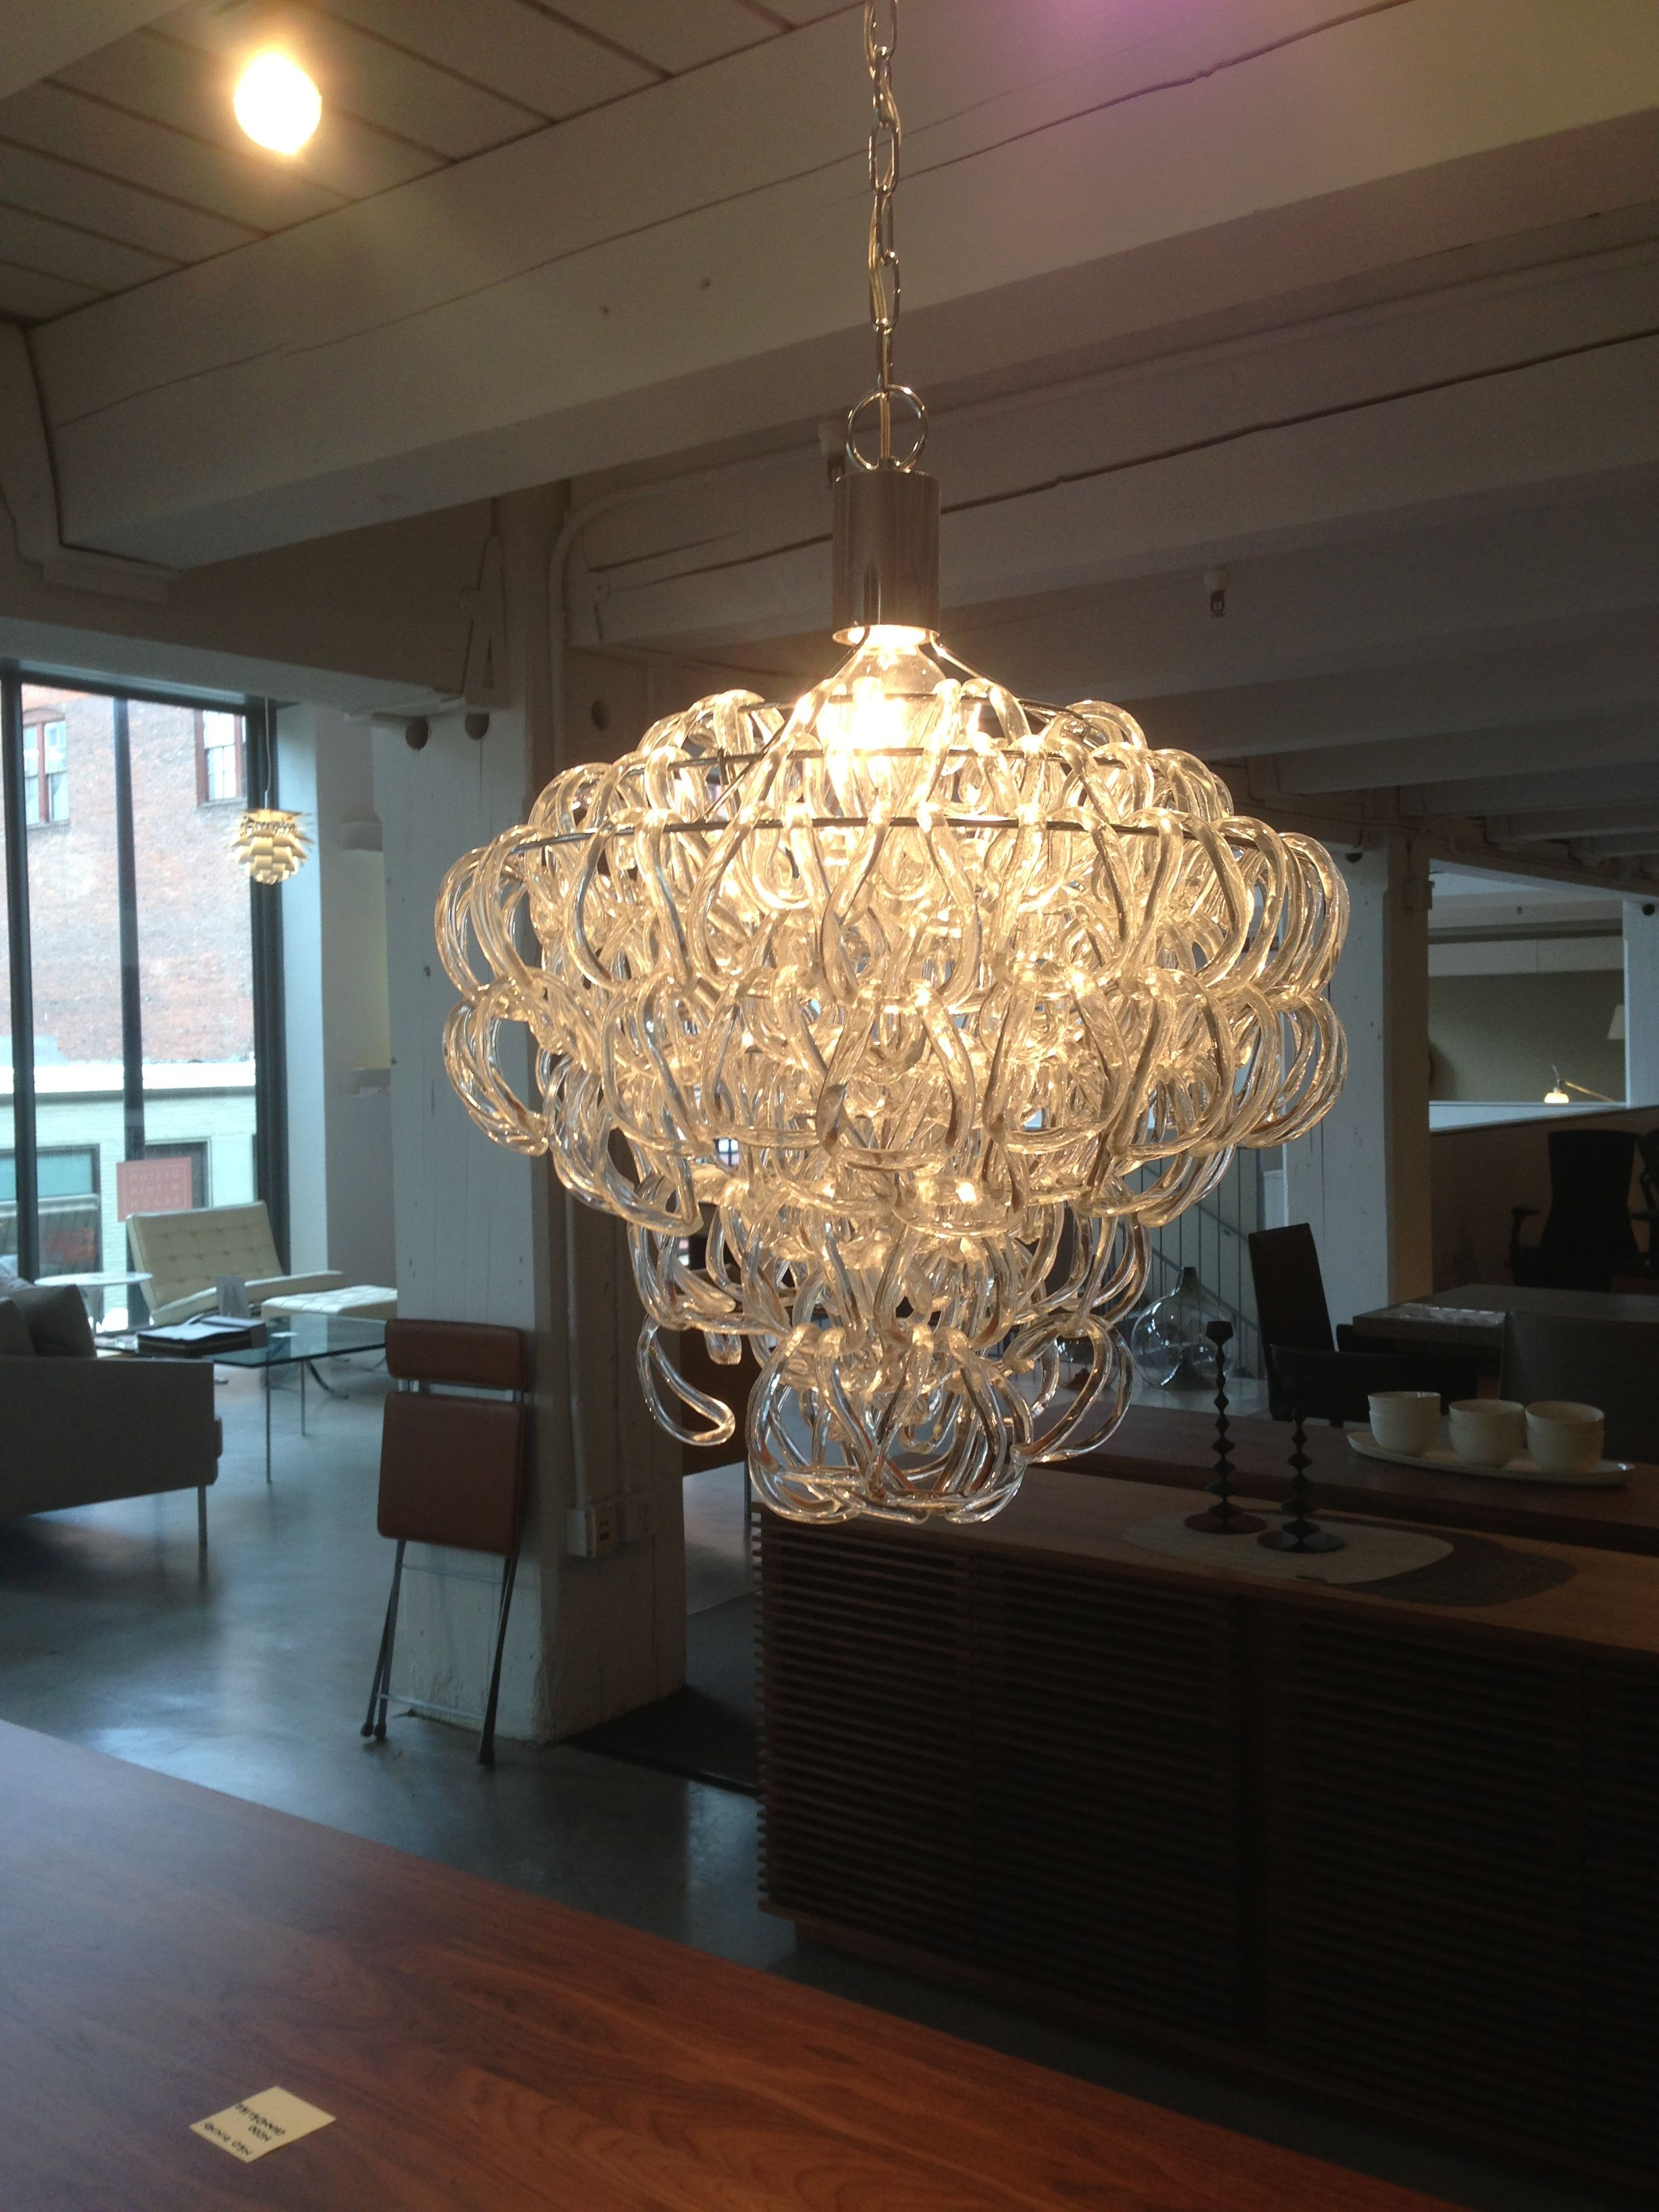 design within reach lighting. Design Within Reach Lighting Fixture T